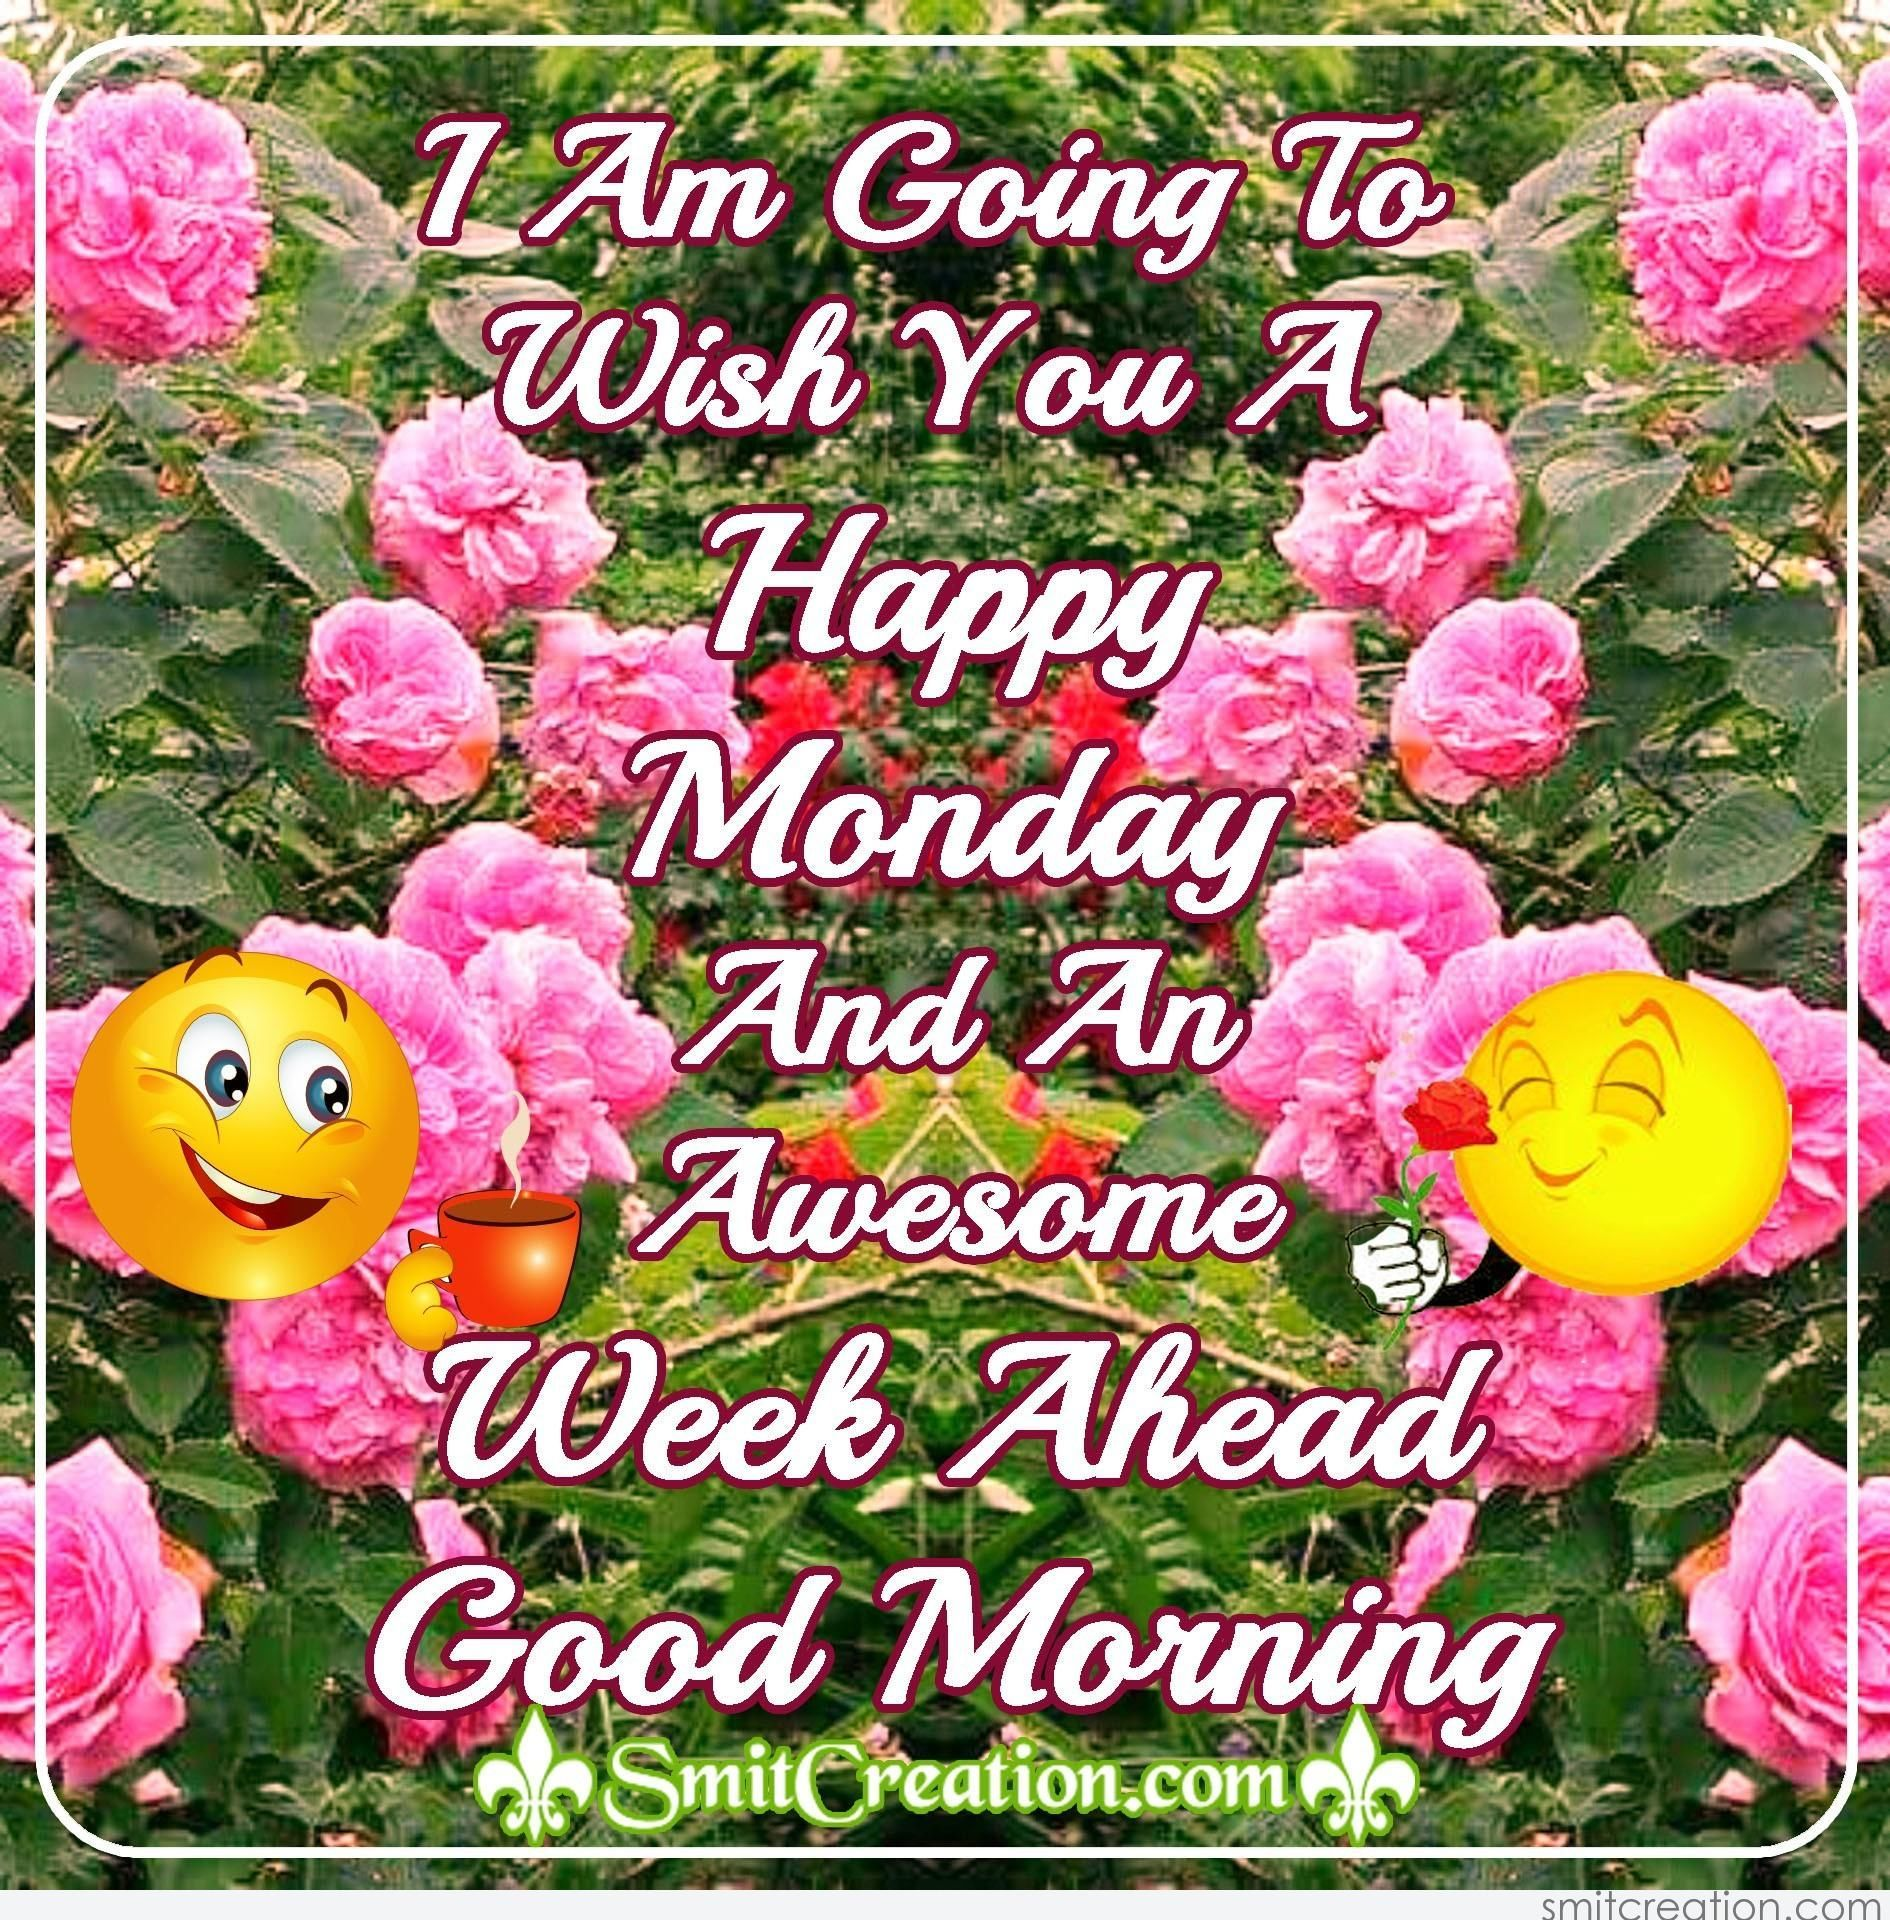 Good Morning Monday Quotes Happy Monday And Awesome Week Ahead Good Morning  Quotes .